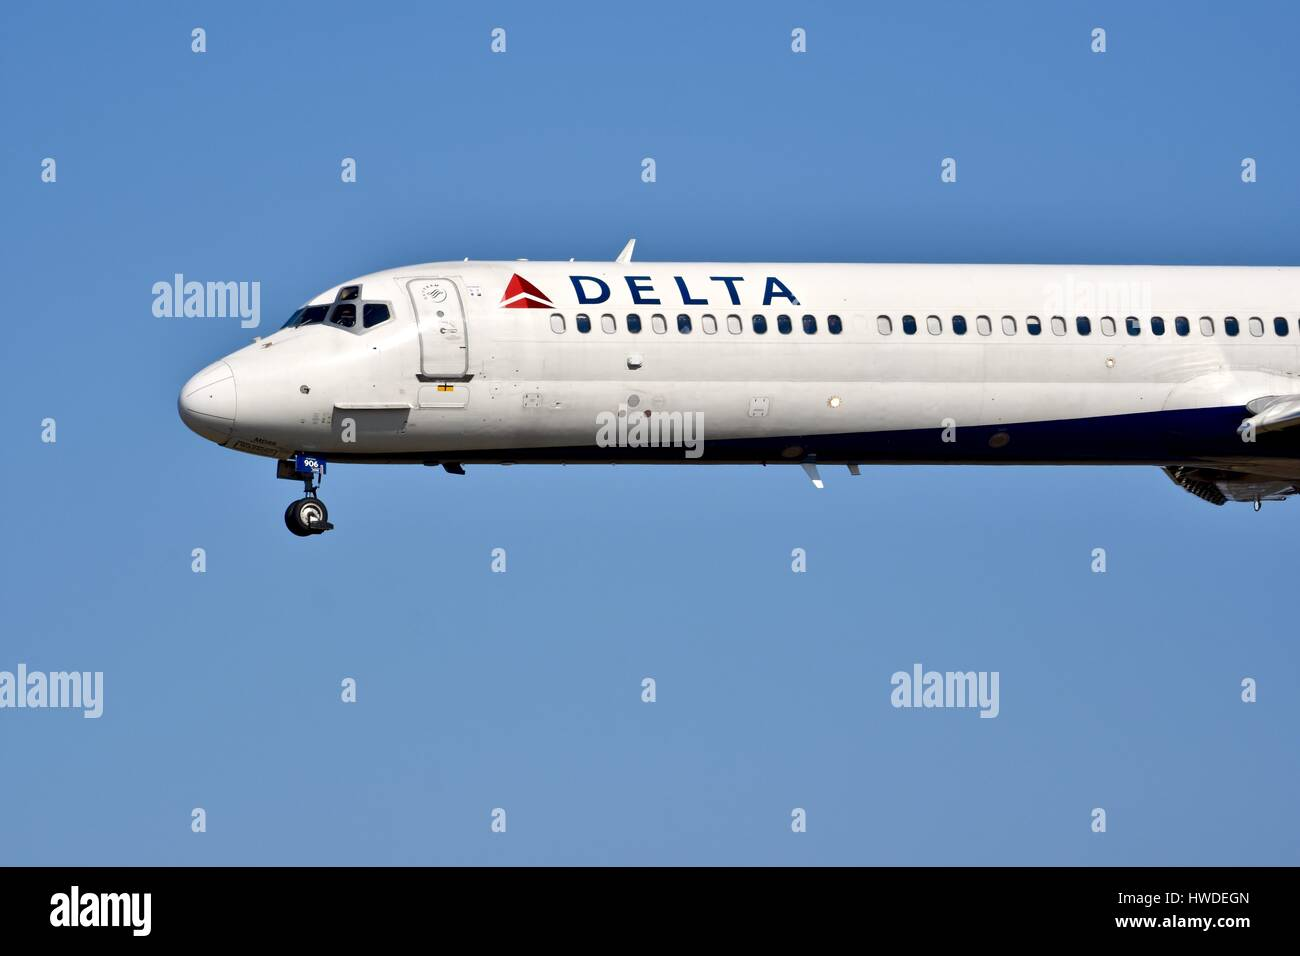 Delta Airlines commercial plane at the BWI airport - Stock Image